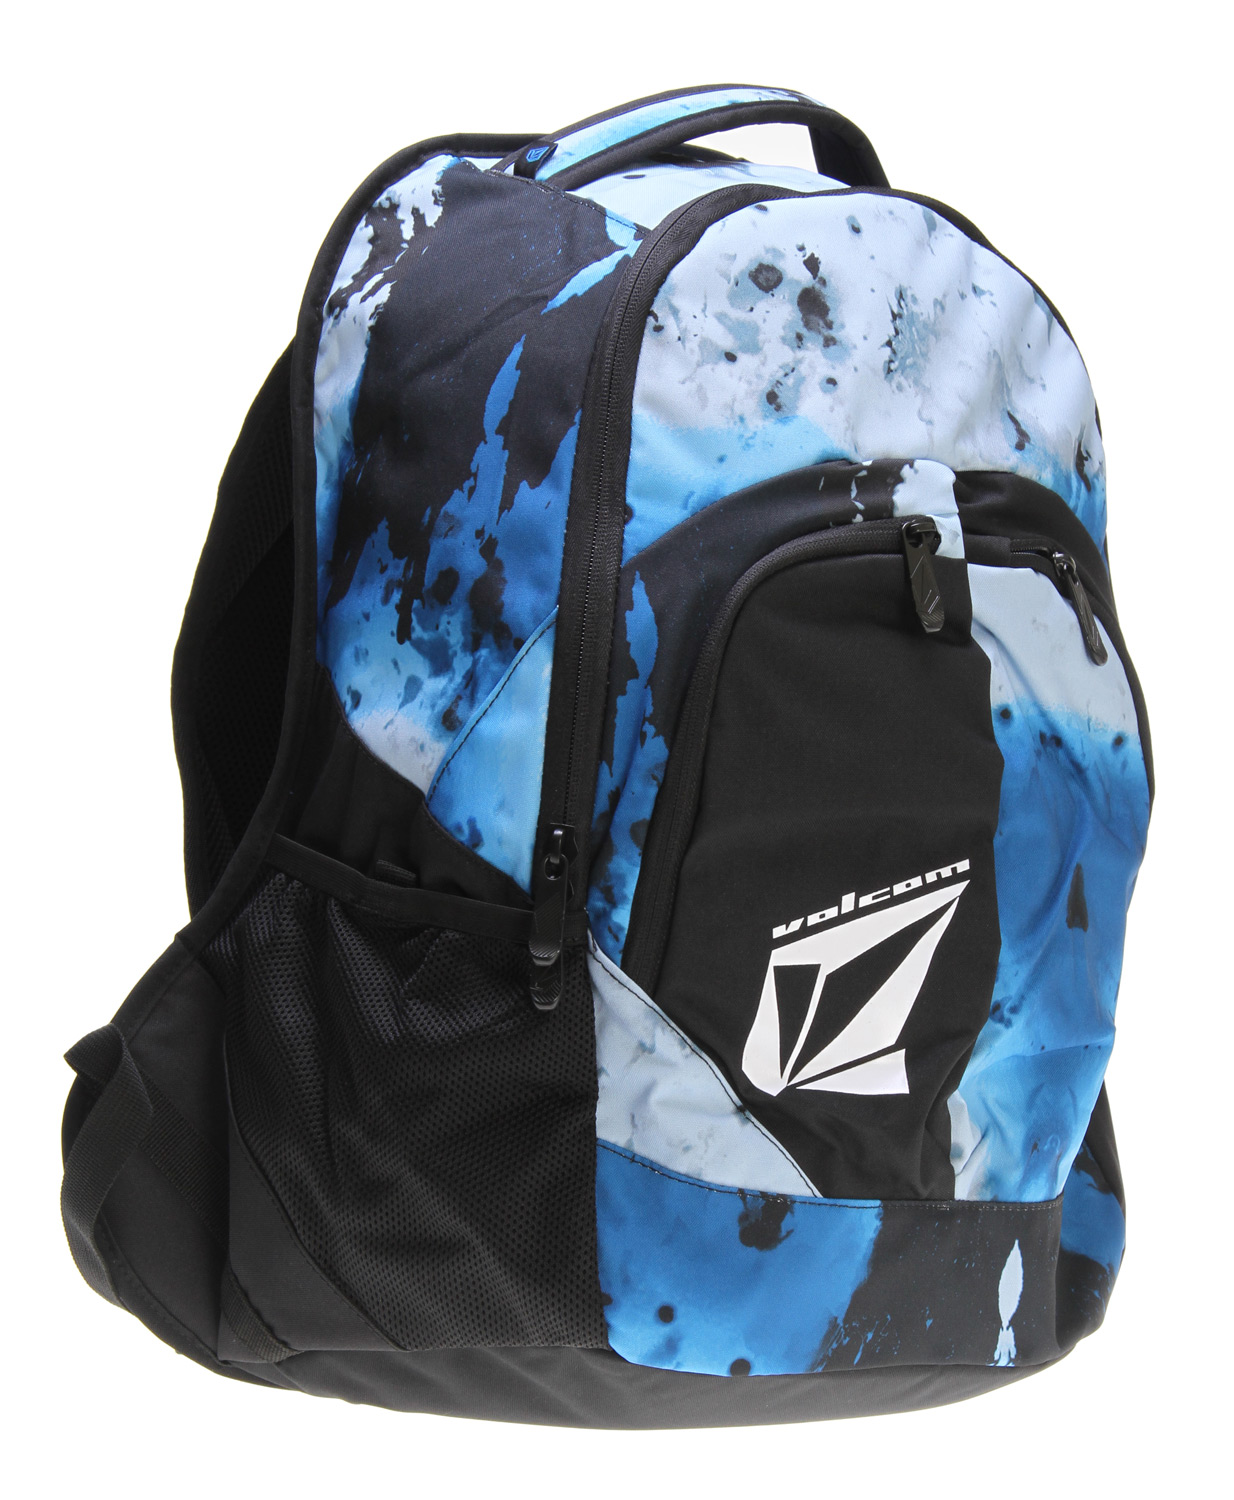 Surf This backpack, unlike your dog, will not eat your homework. Get down with the stone. Youth against establishment and let the kids ride free!Key Features of the Volcom E2 Backpack: 300d polyester Polyester lining Zipper closure Volume: 1891in [31l] Dimensions: 19.75 x 13 x 7.75 inch [50 x 33 x 20cm] Weight: 1.5lb [0.66kg] - $28.95